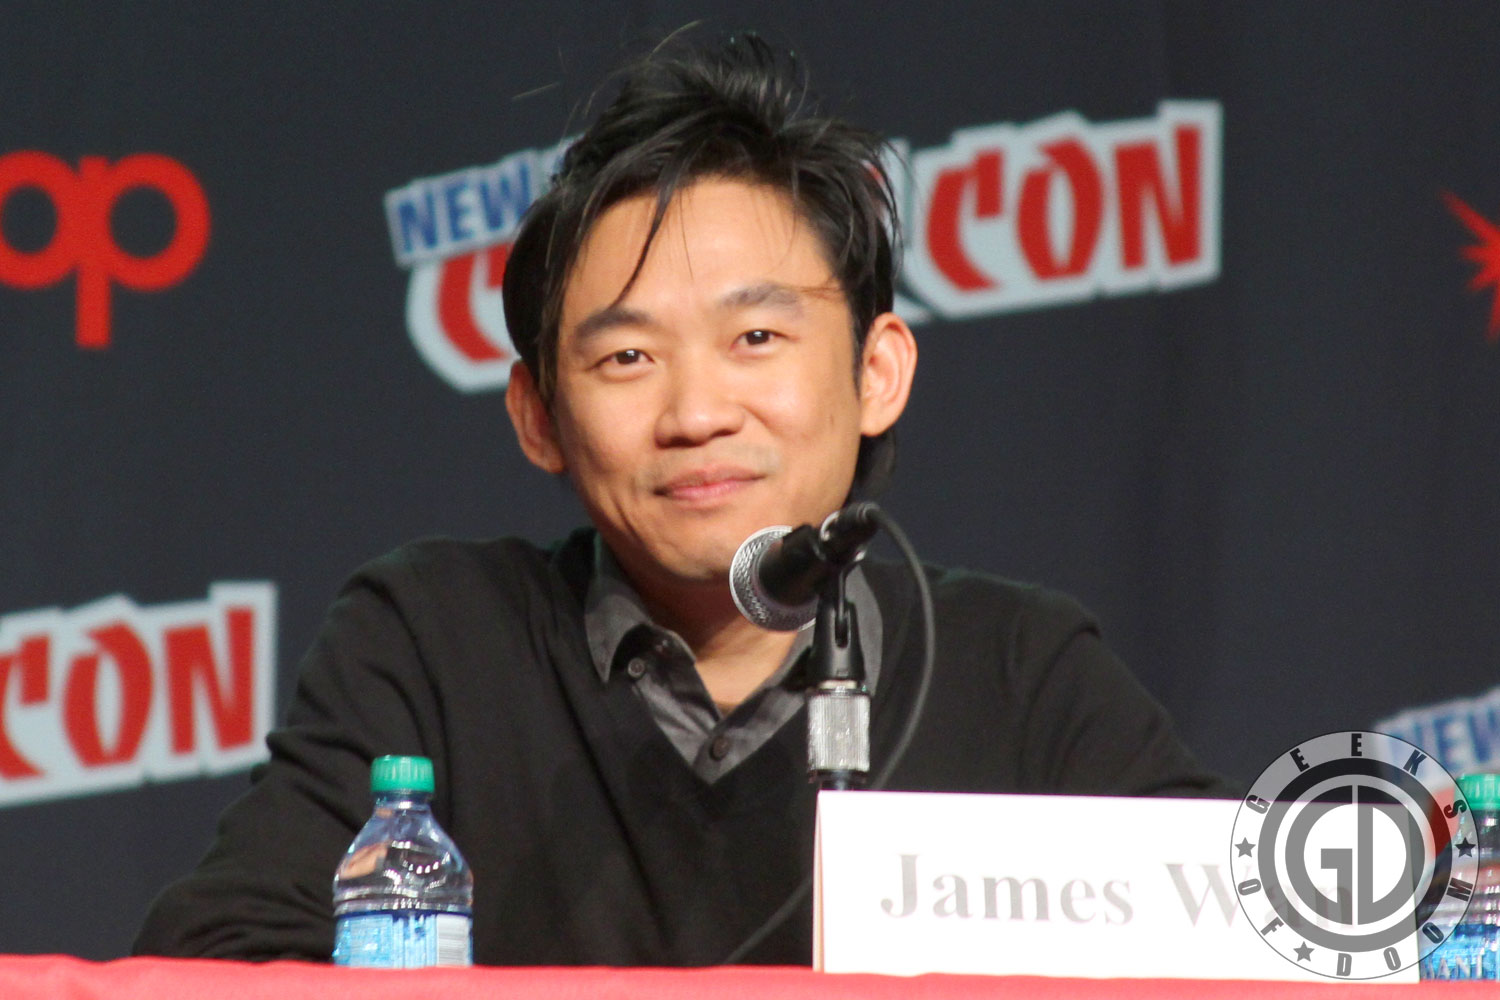 james wan twitterjames wan фильмы, james wan films, james wan filmleri, james wan wiki, james wan net worth, james wan director, james wan imdb, james wan wife, james wan wikipedia, james wan dead space, james wan csfd, james wan youtube, james wan the nun, james wan family, james wan instagram, james wan twitter, james wan kinopoisk, james wan mortal kombat, james wan filmography, james wan movies